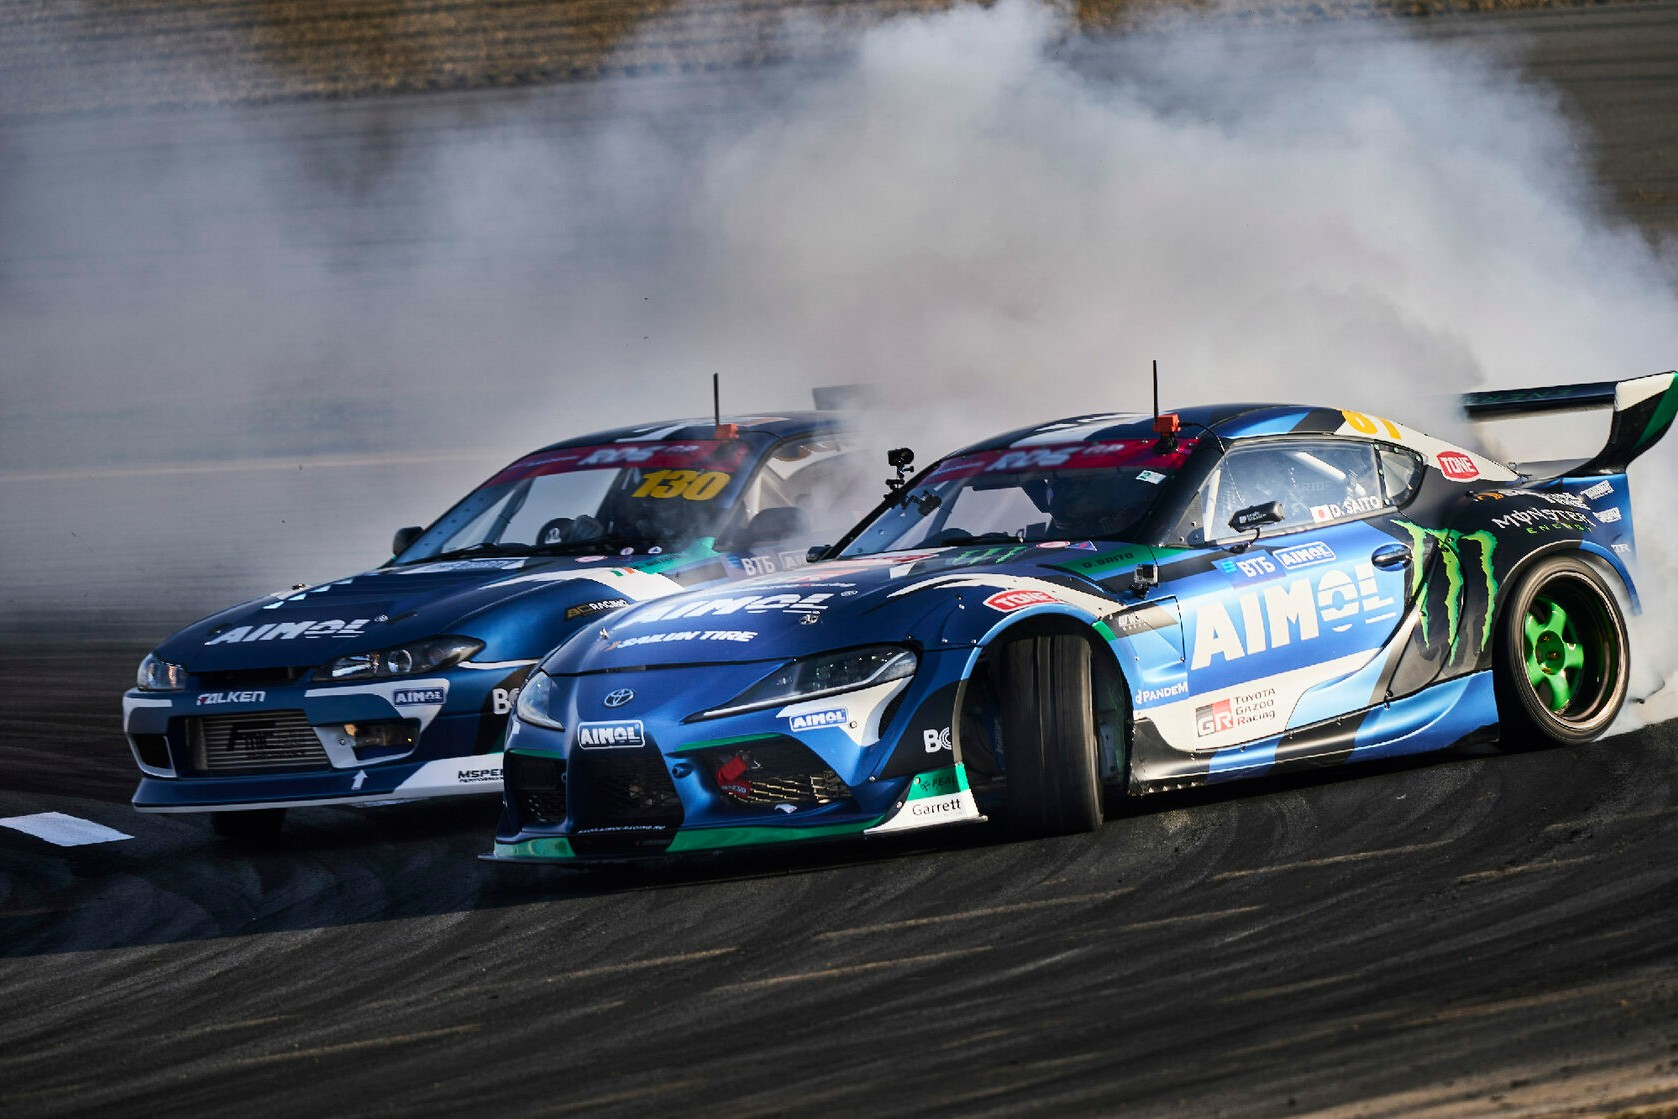 Live In Latvia:  Watch All The Action From World's Largest Drift Event Live Online